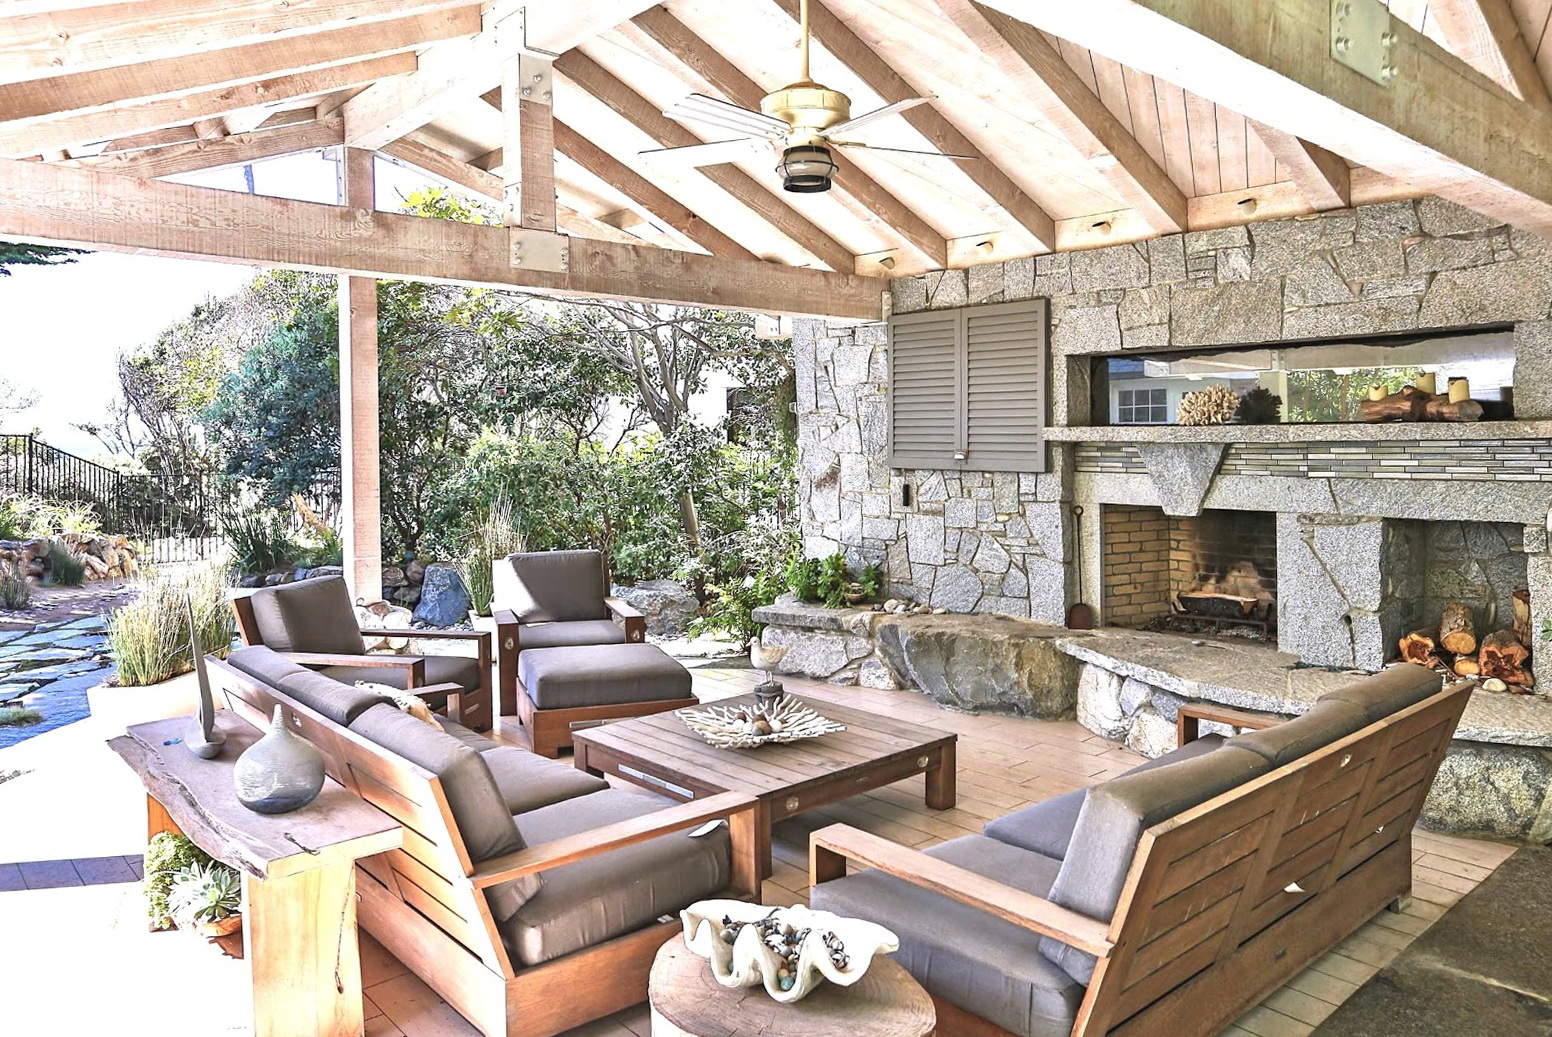 Covered Outdoor Fireplace Ideas | Home Design Ideas